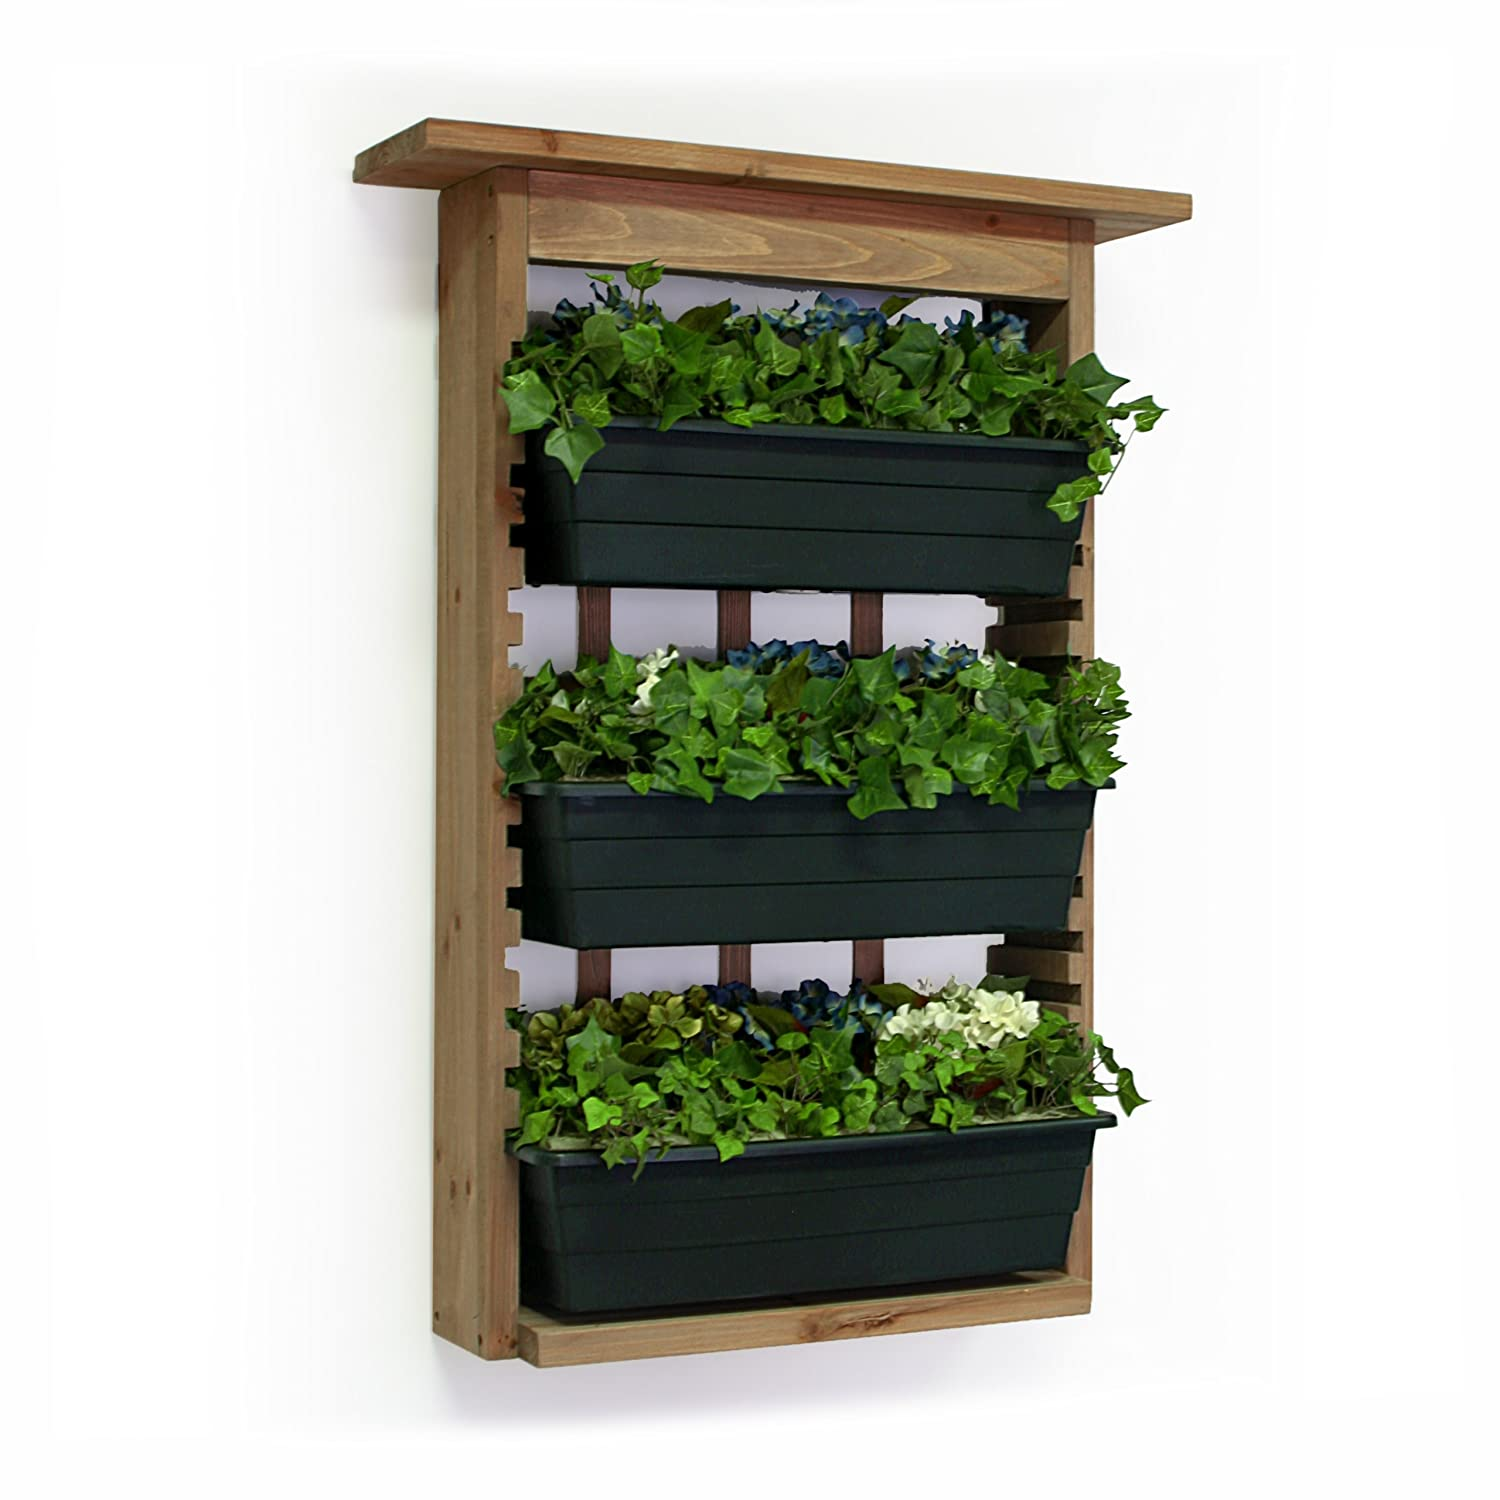 Amazon Com Algreen 34002 Garden View Vertical Living Wall Planter